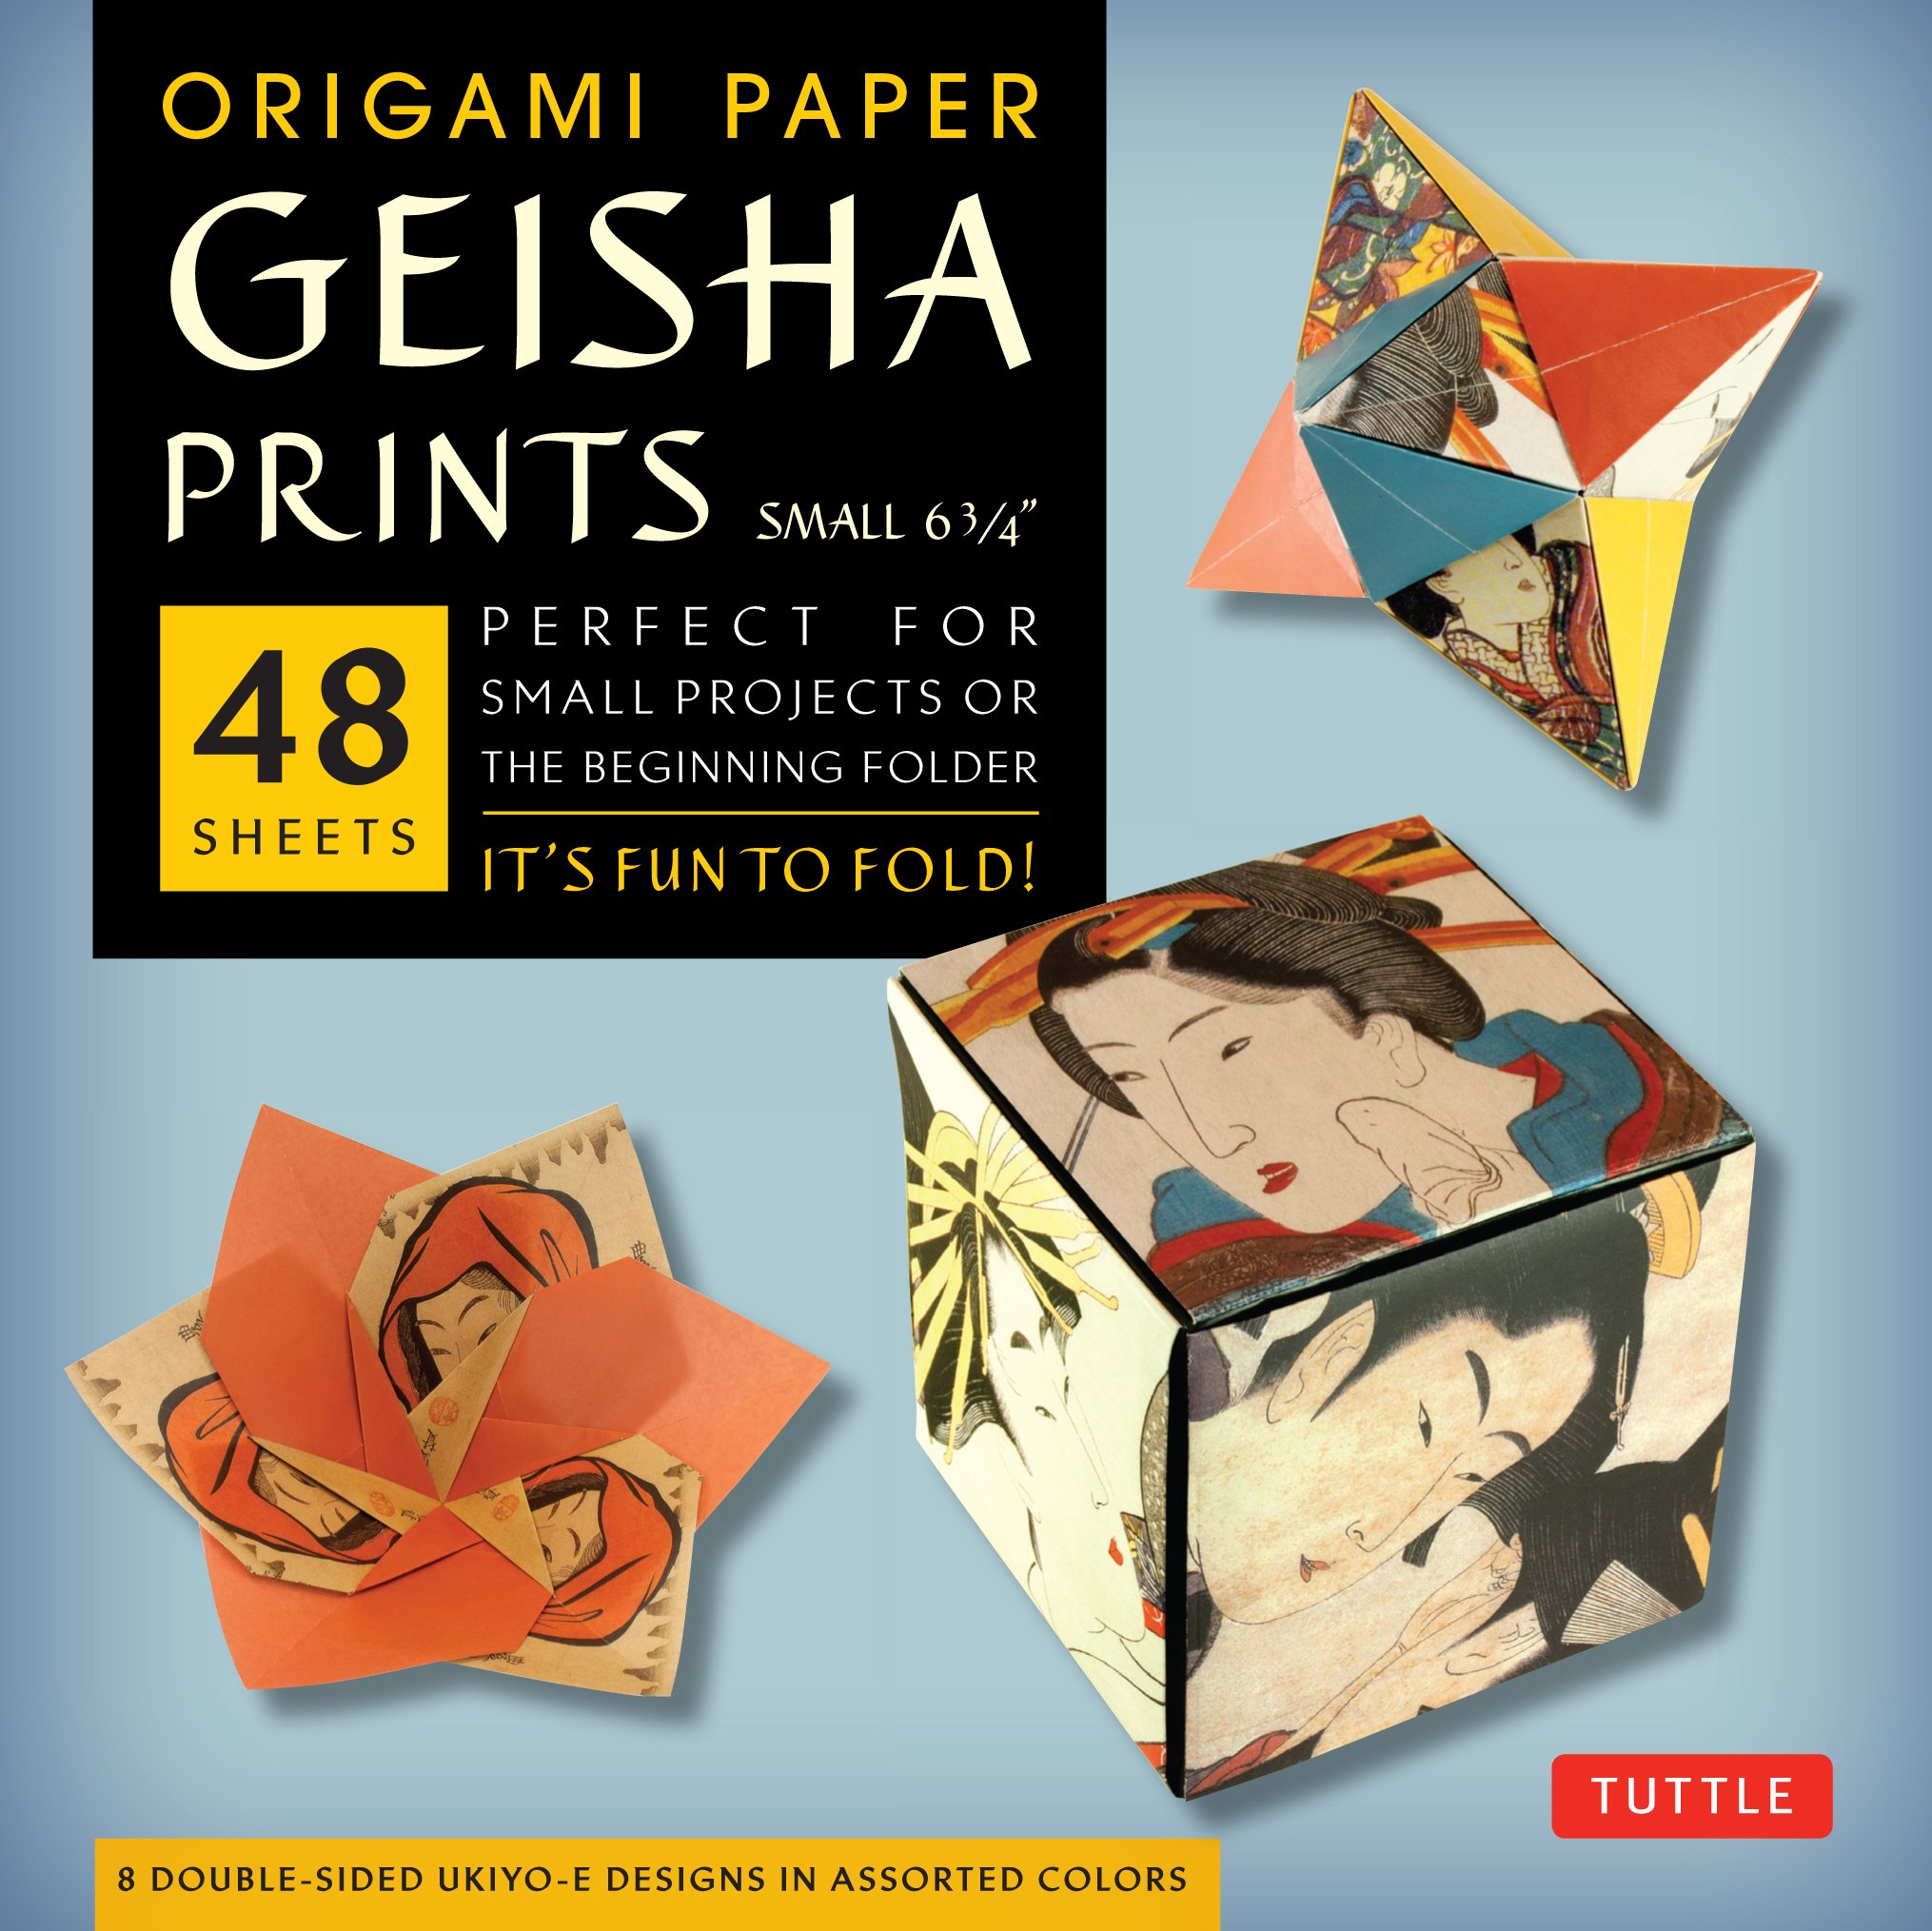 """Origami Paper - Geisha Prints - Small 6 3/4"""" - 48 Sheets: Tuttle Origami Paper: High-Quality Origami Sheets Printed with 8 Different Designs: Instructions for 6 Projects Included pdf epub"""